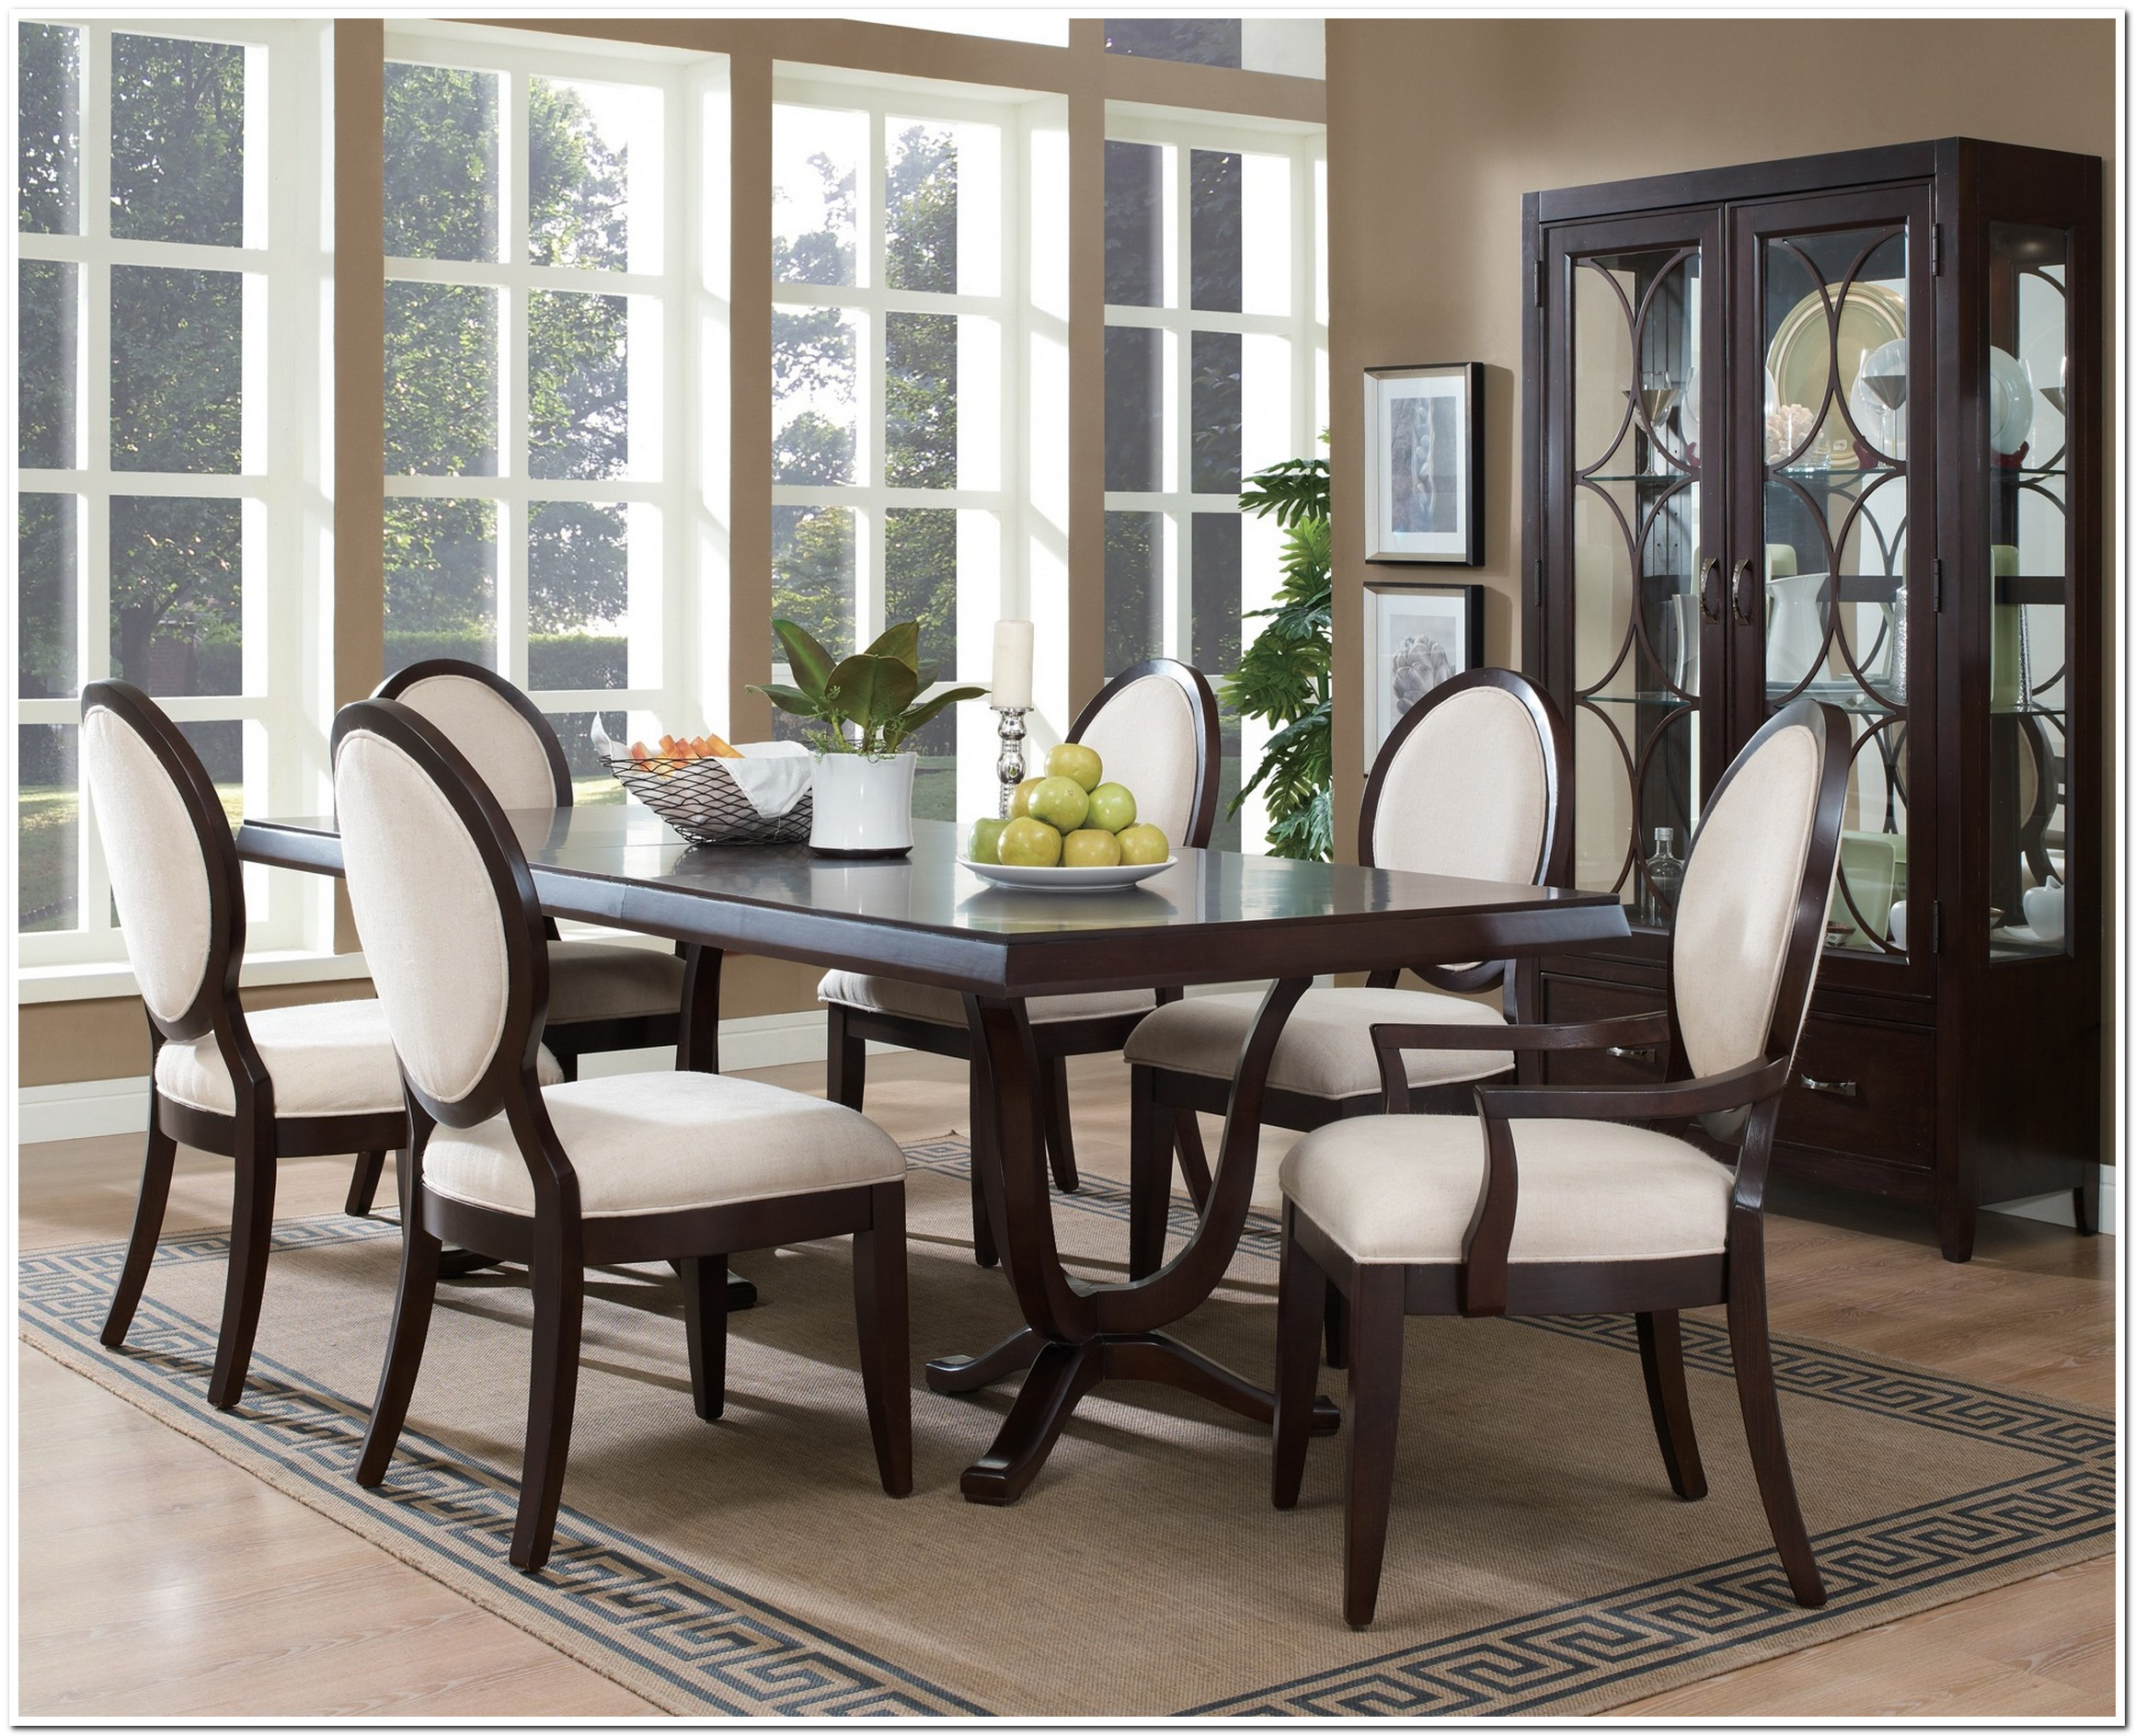 Know what dining room furniture sets you want to bring out for Dining room furniture